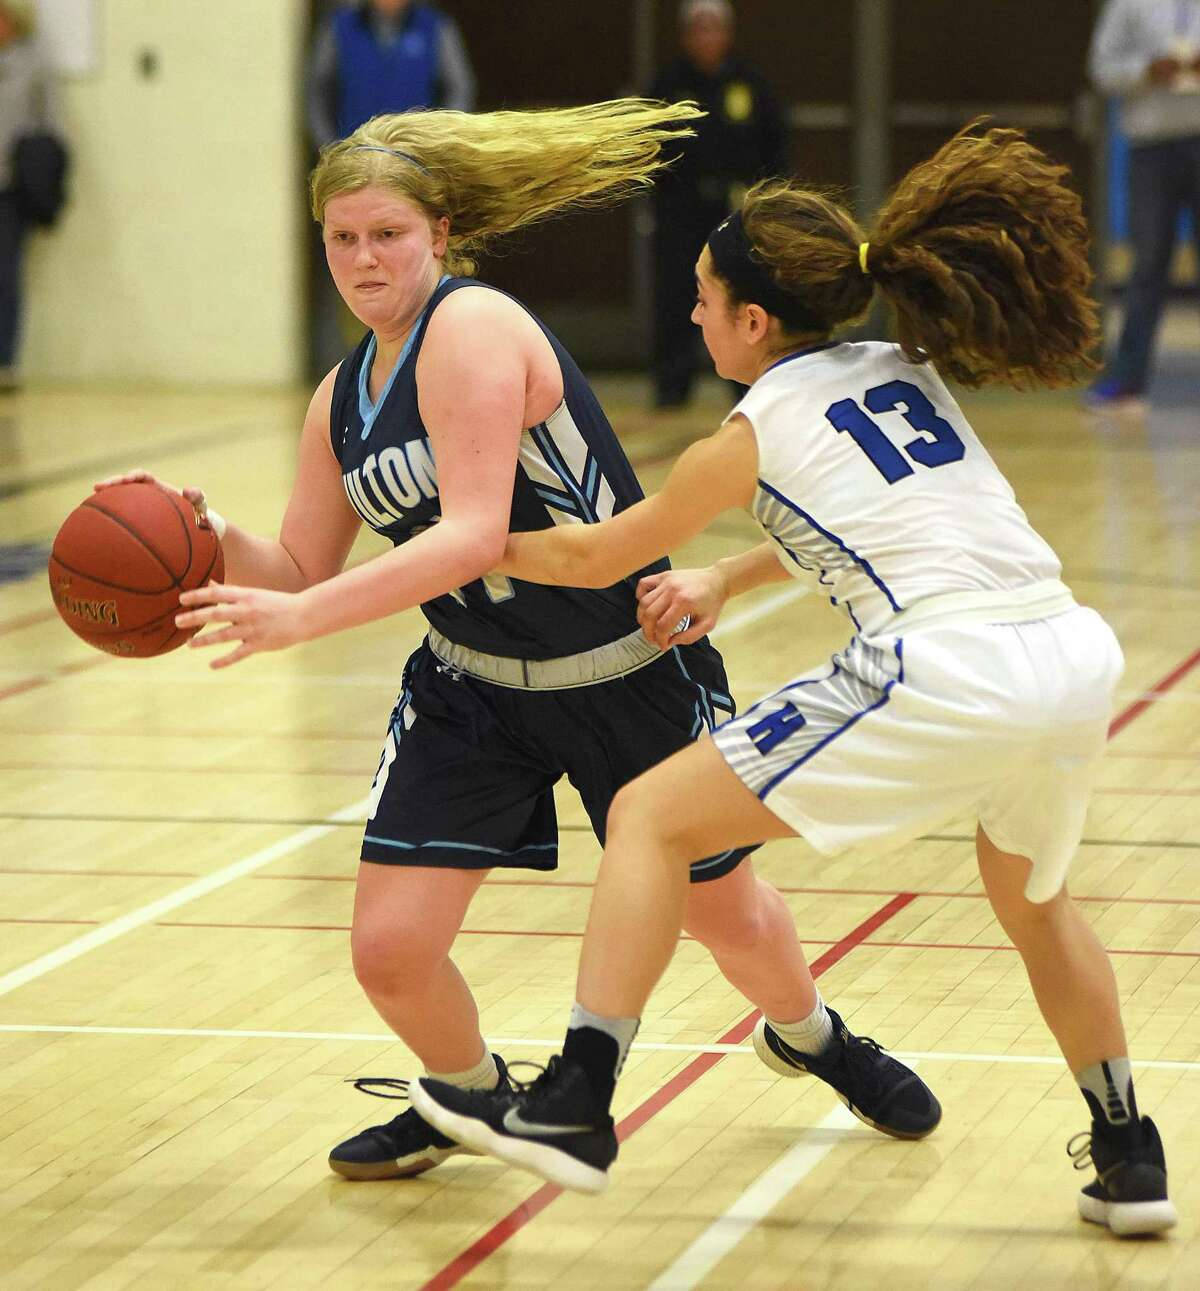 Claire Gulbin, left, looks for dribbling room past Hall's Jenna Zydanowicz during Thursday's CIAC Class LL second-round game in West Hartford. Hall won 52-47.